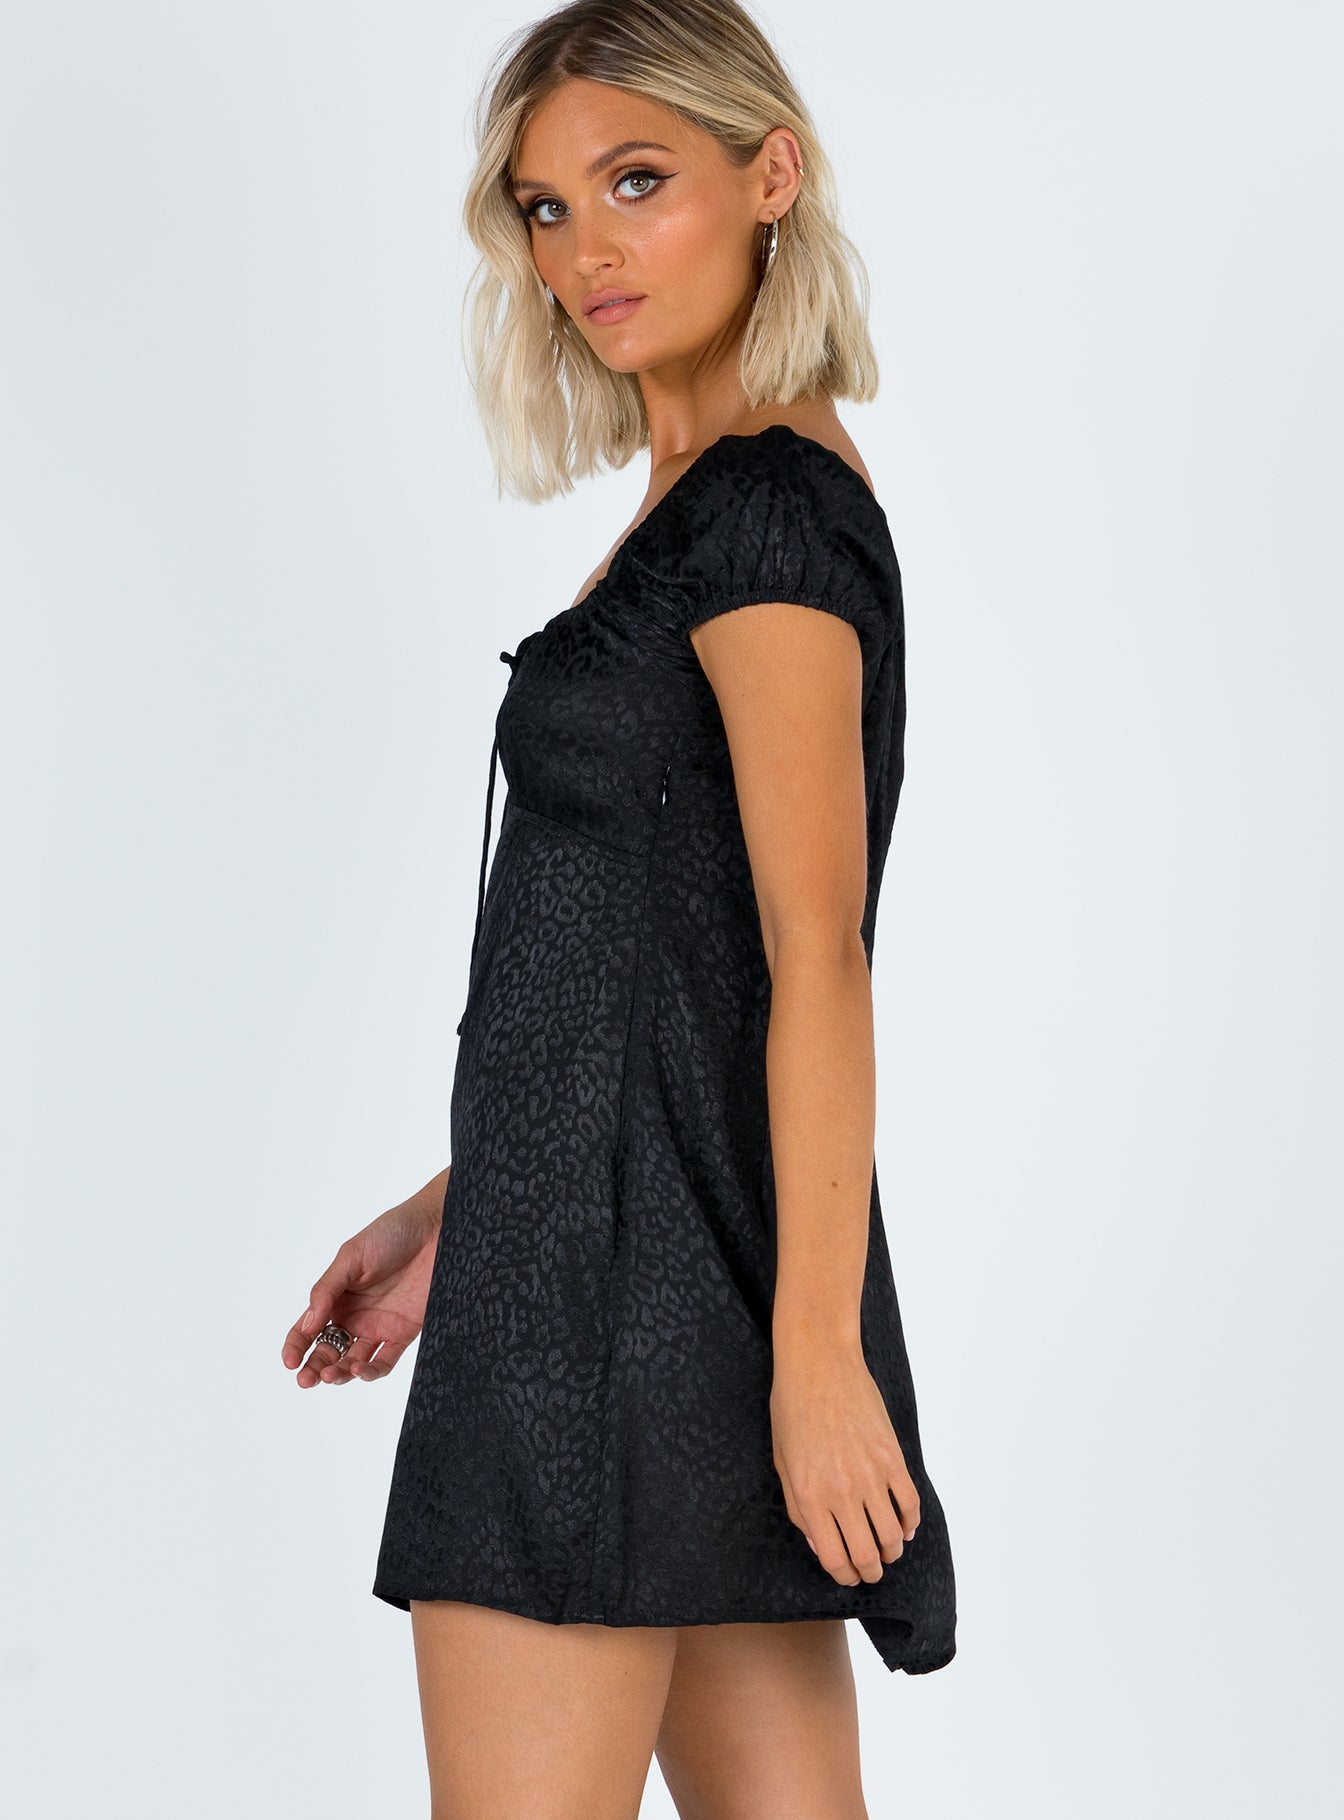 Motel Gaval Dress Satin Cheetah Black